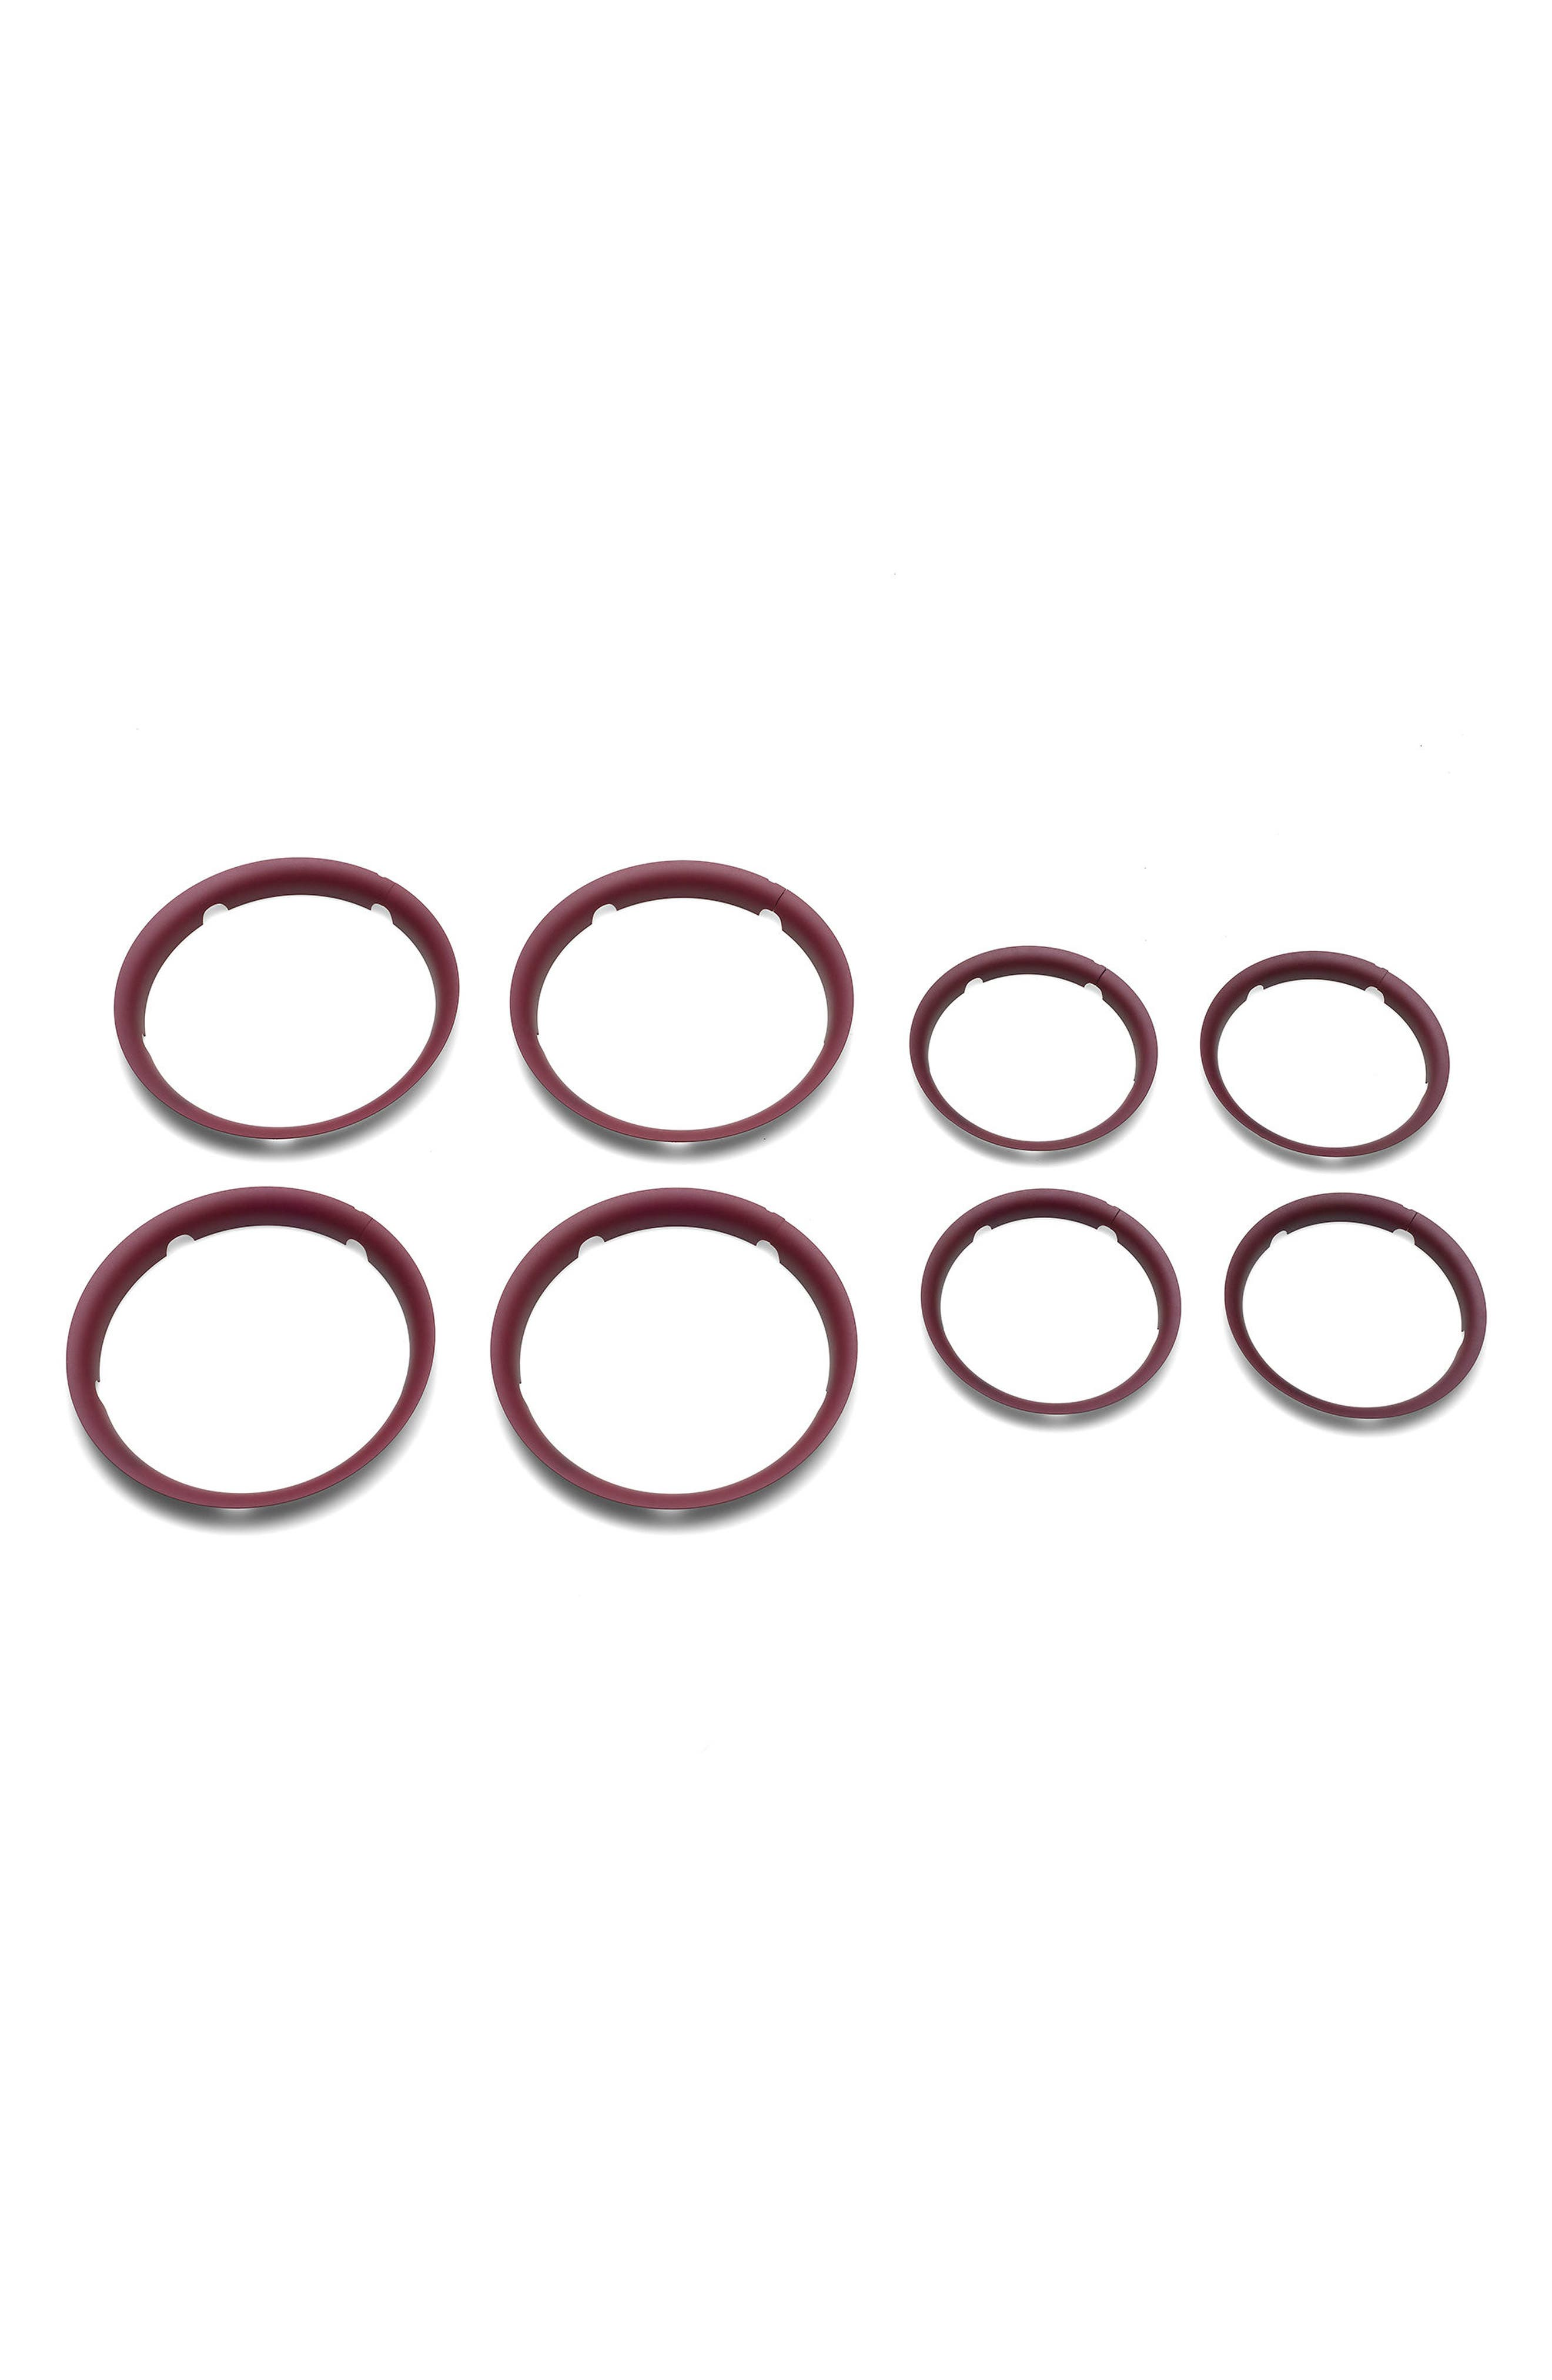 Set of Wheel Caps for Bugaboo Fox Stroller,                             Main thumbnail 1, color,                             Red